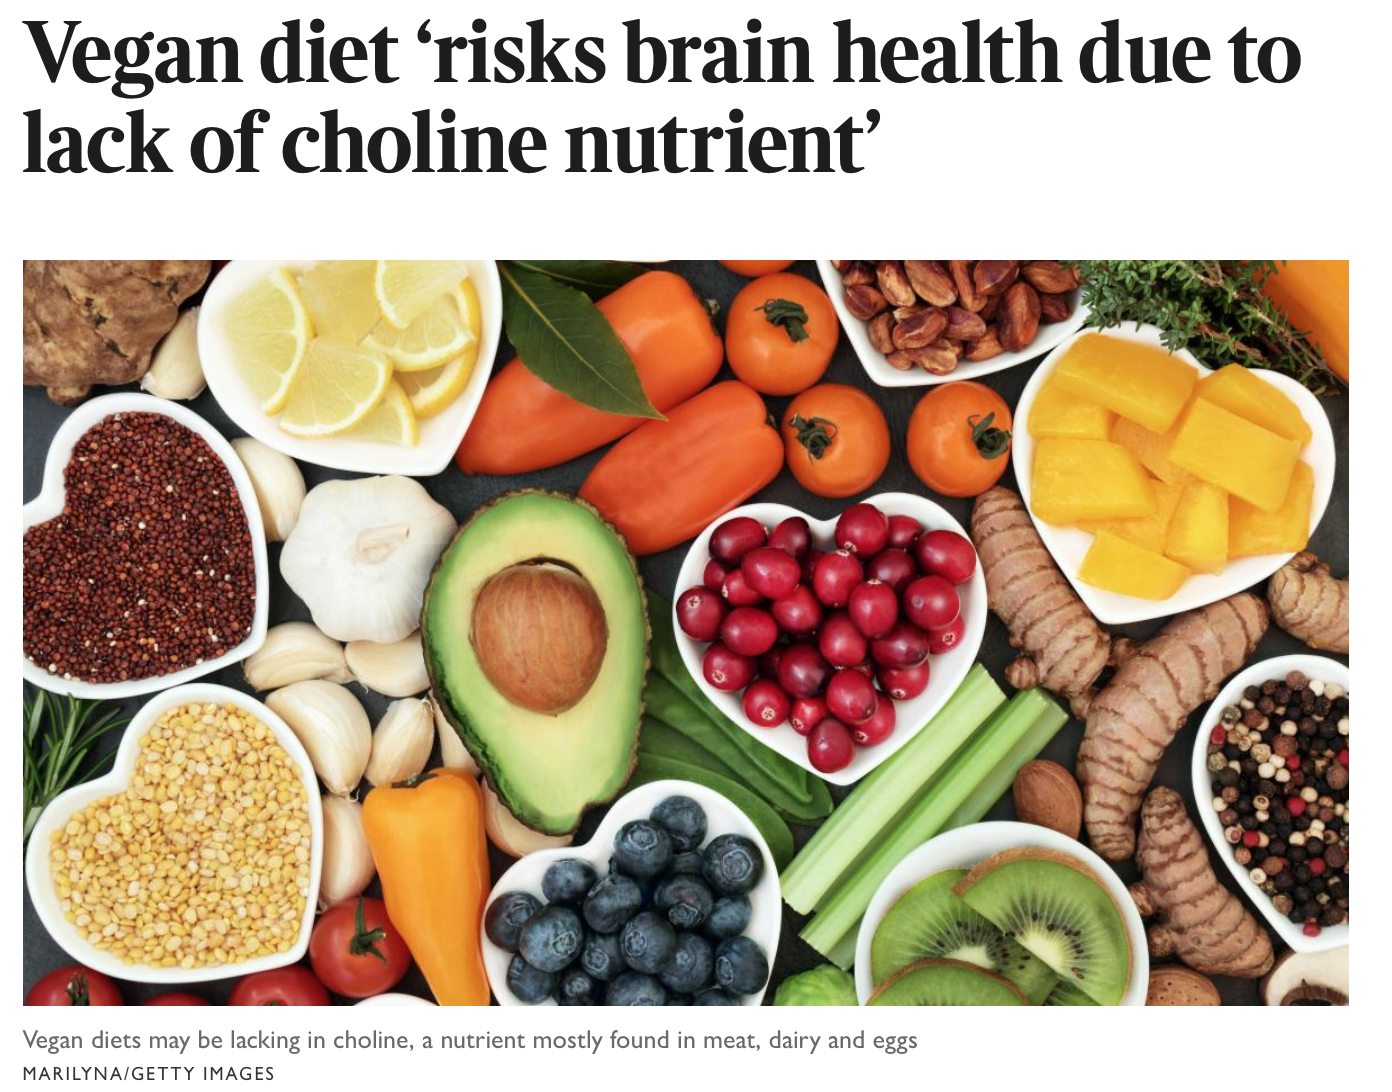 Are vegan diets deficient in choline?